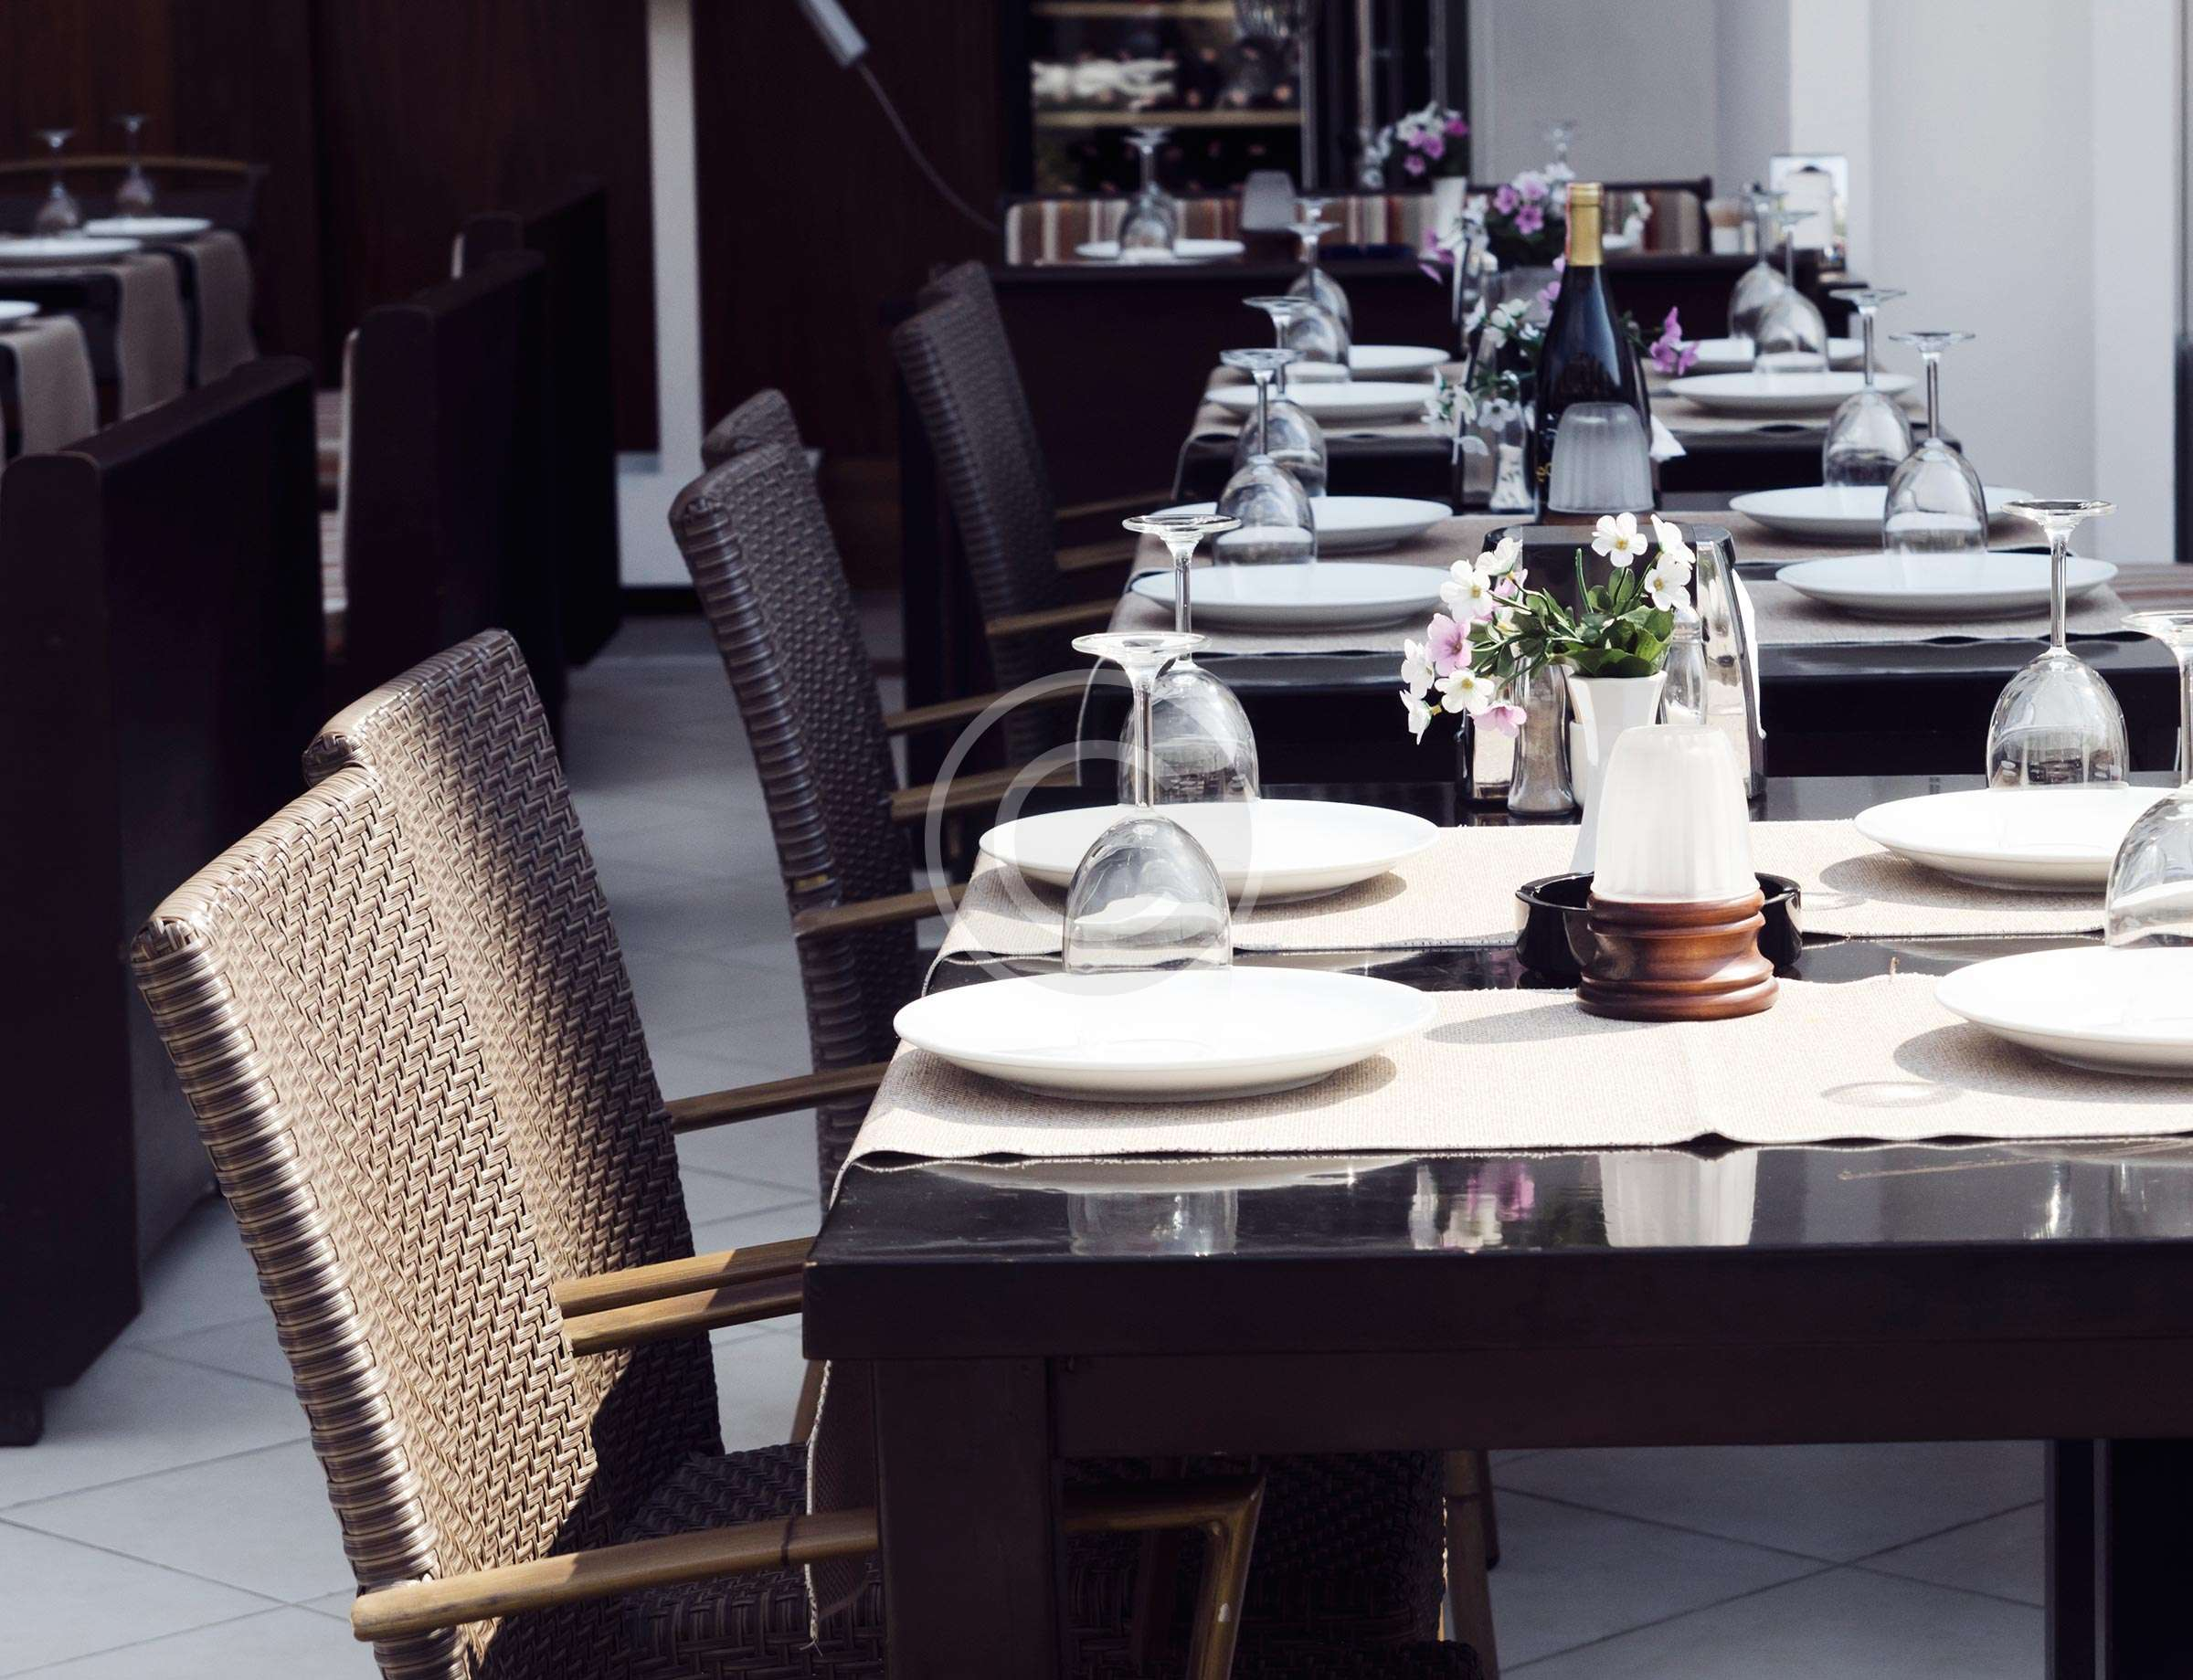 How to Find the Perfect Restaurant